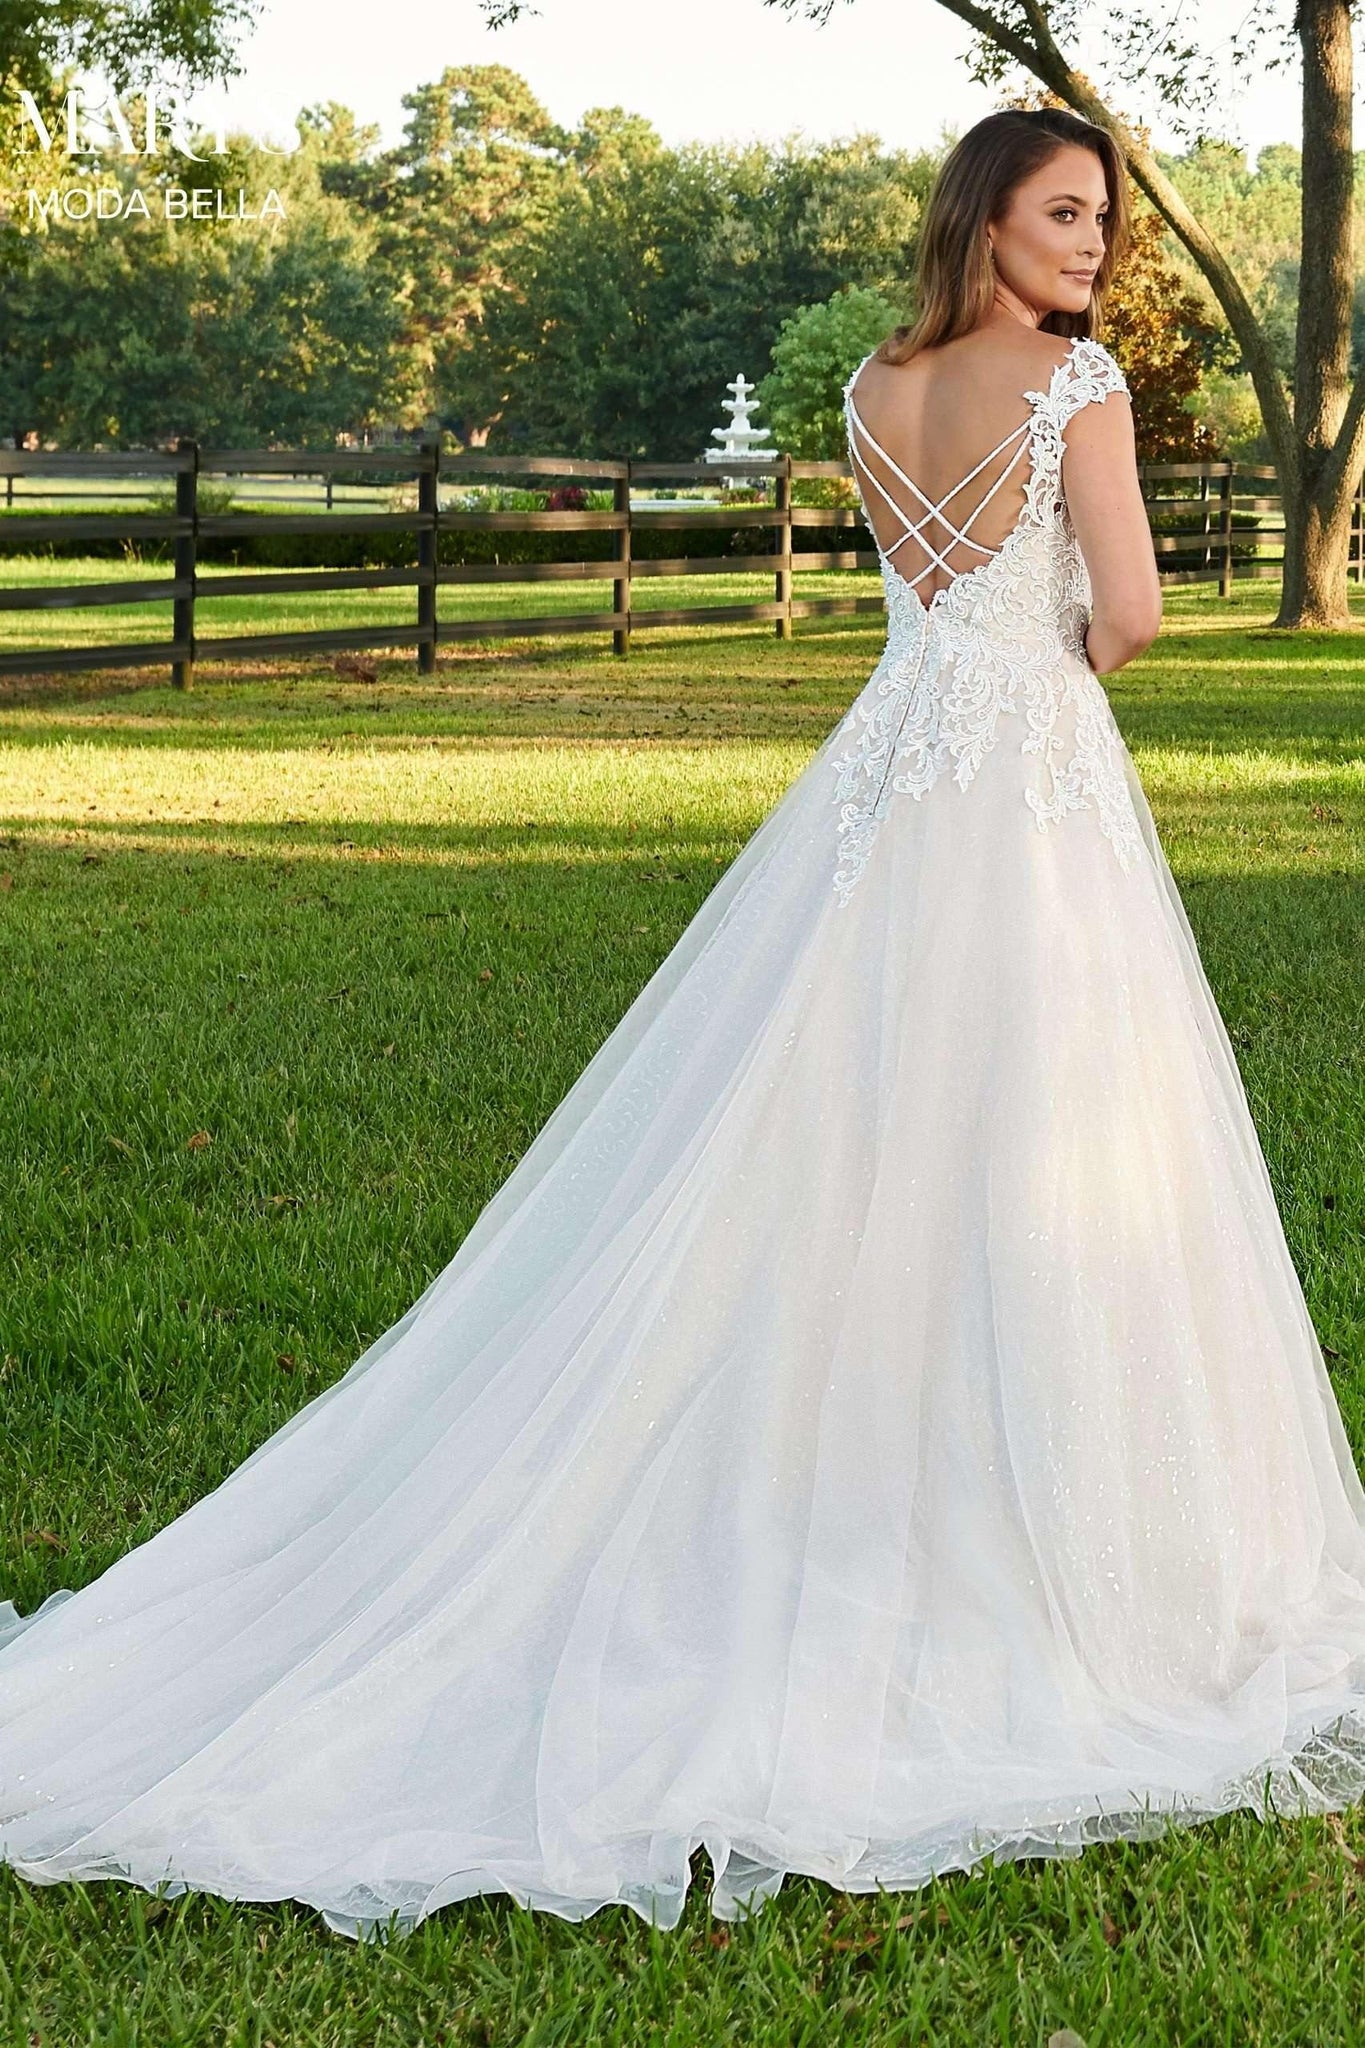 MARY'S BRIDAL - Helena - Adore Bridal and Occasion Wear